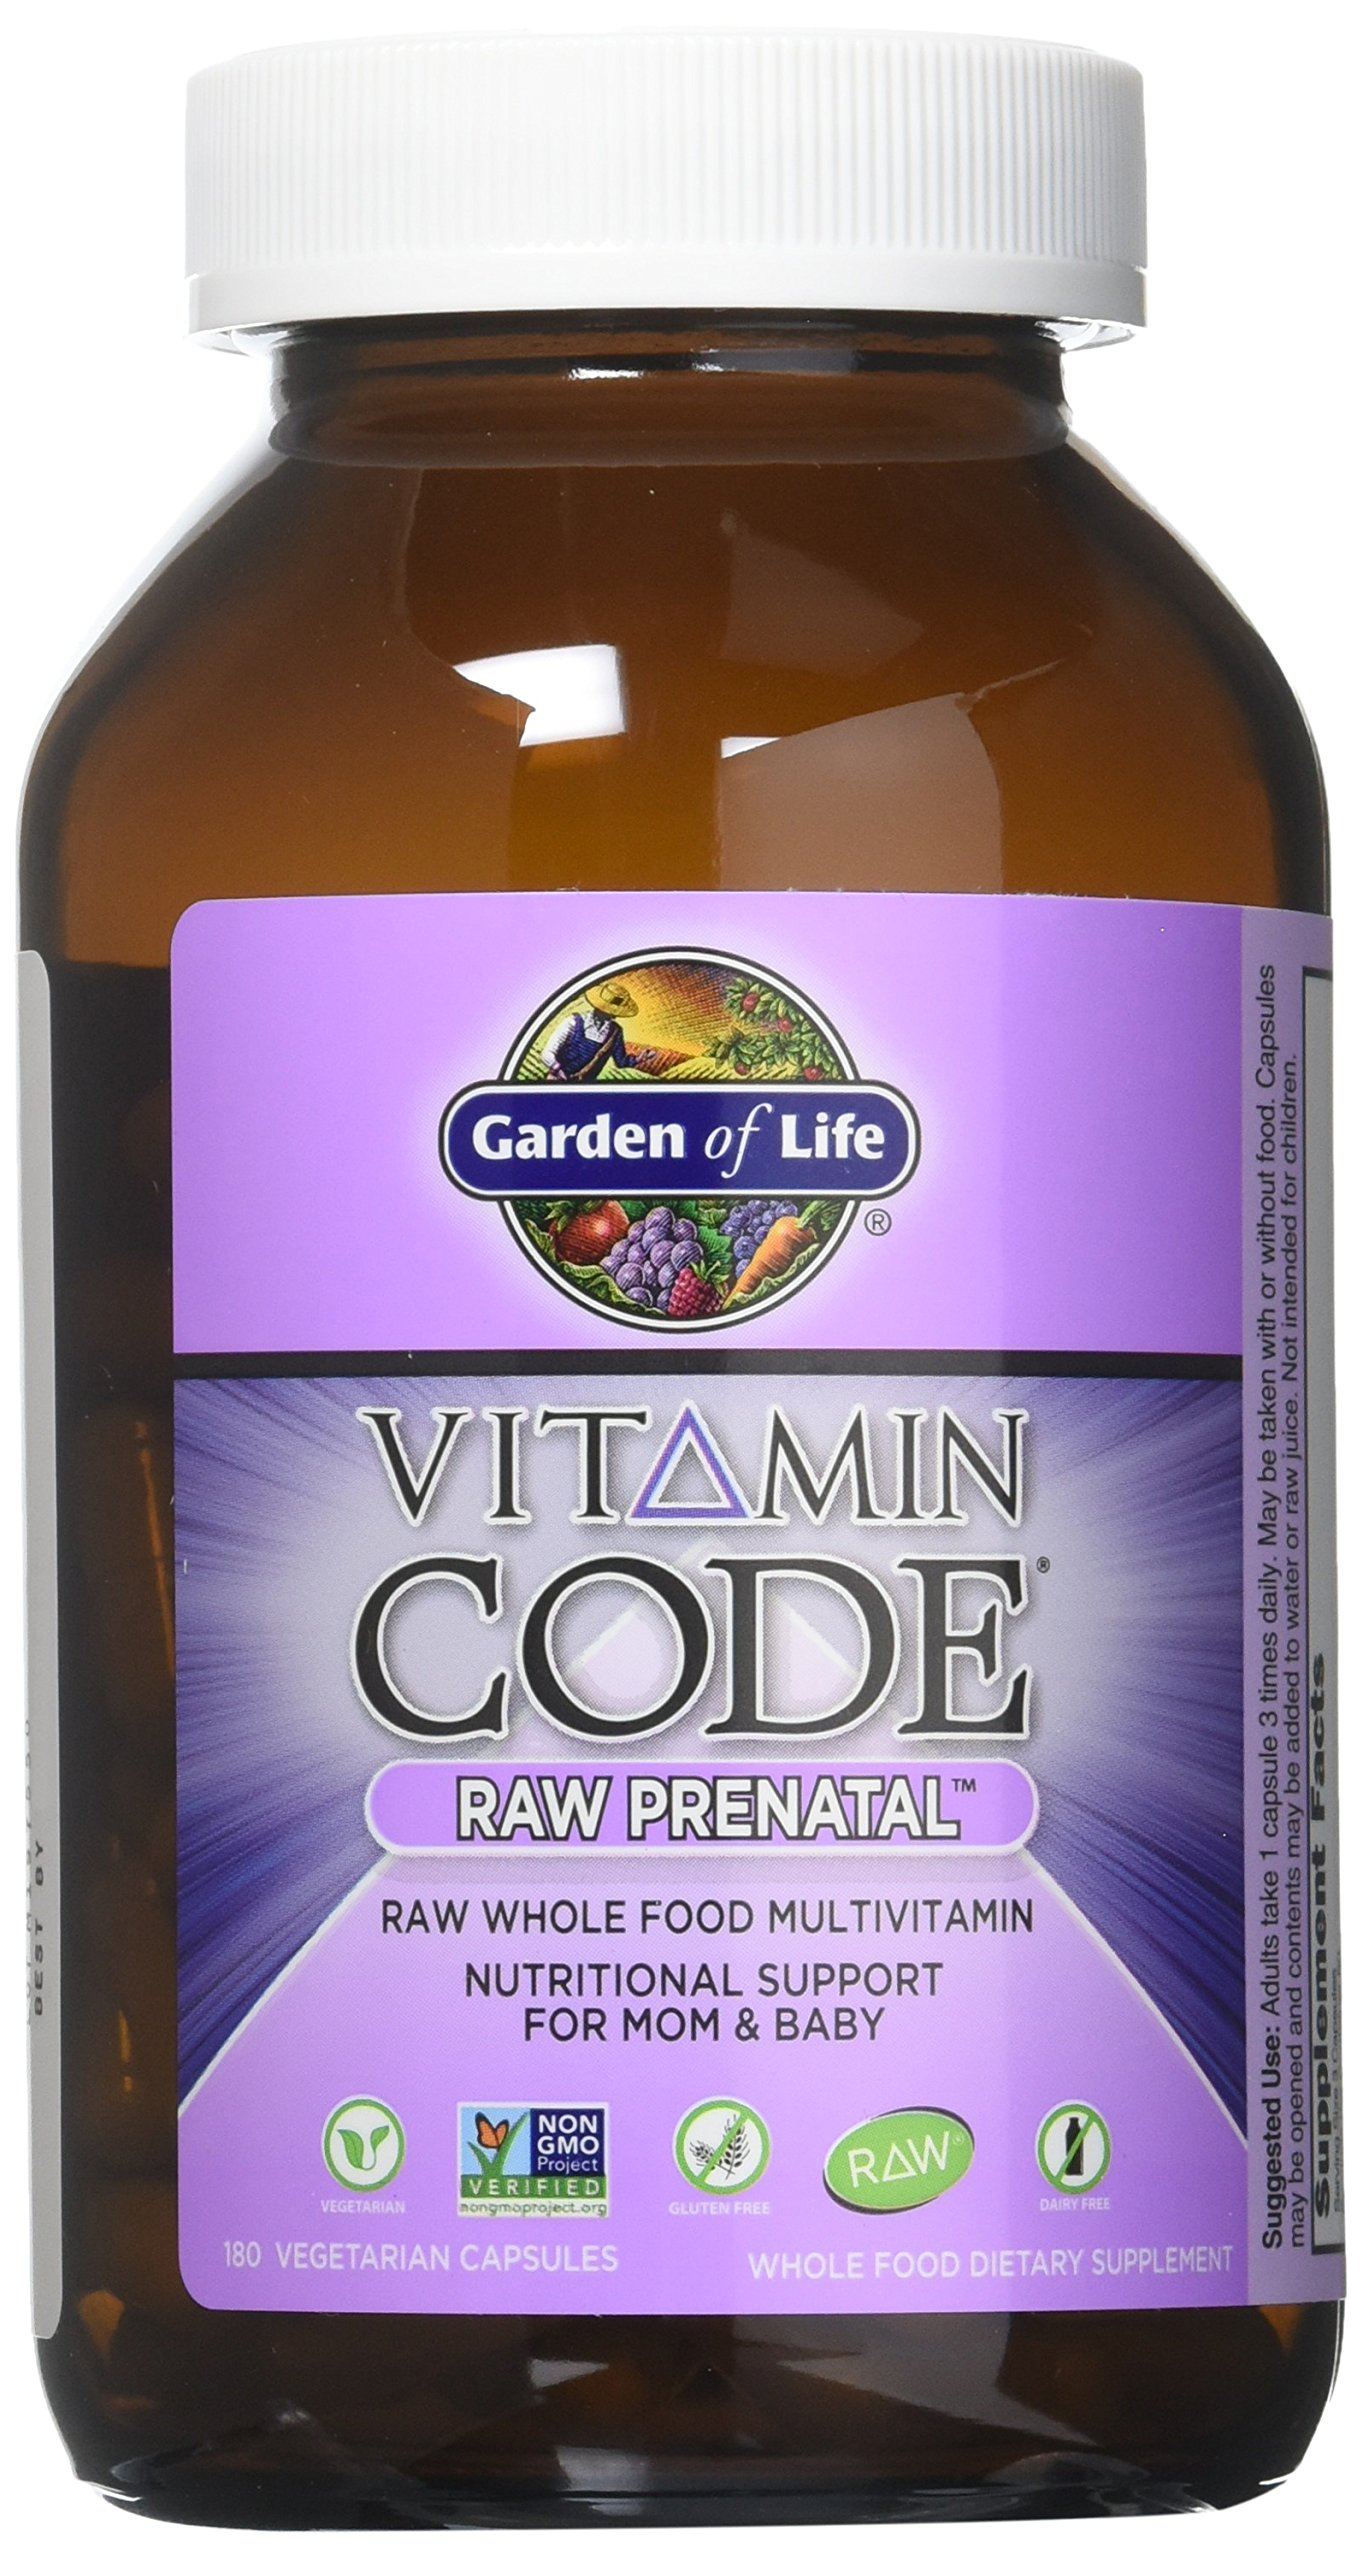 Garden of Life Vitamin Code RAW Prenatal, 90 Capsules by Garden of Life